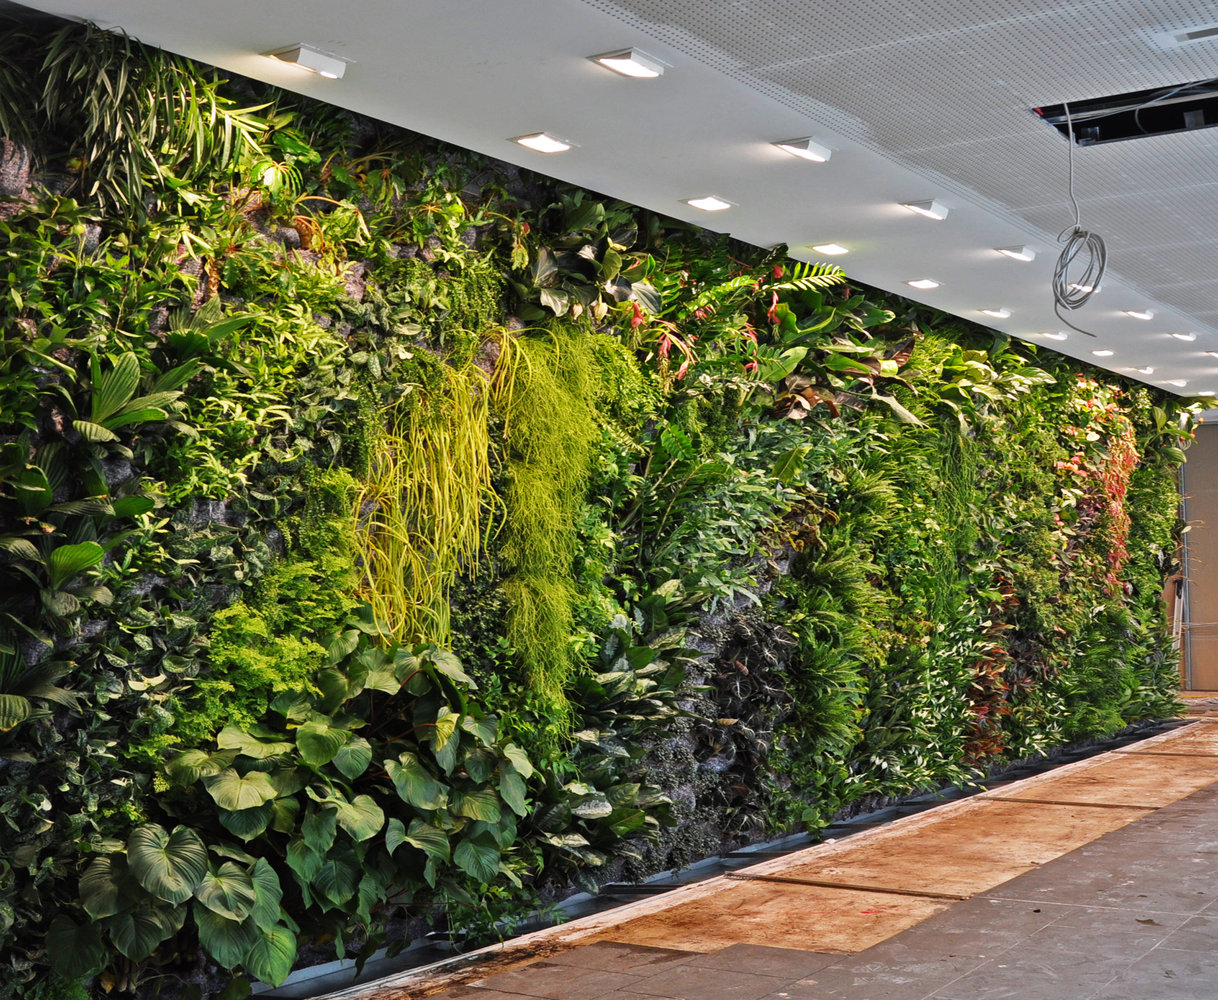 Fronius headquarters wels austria vertical garden for Home vertical garden